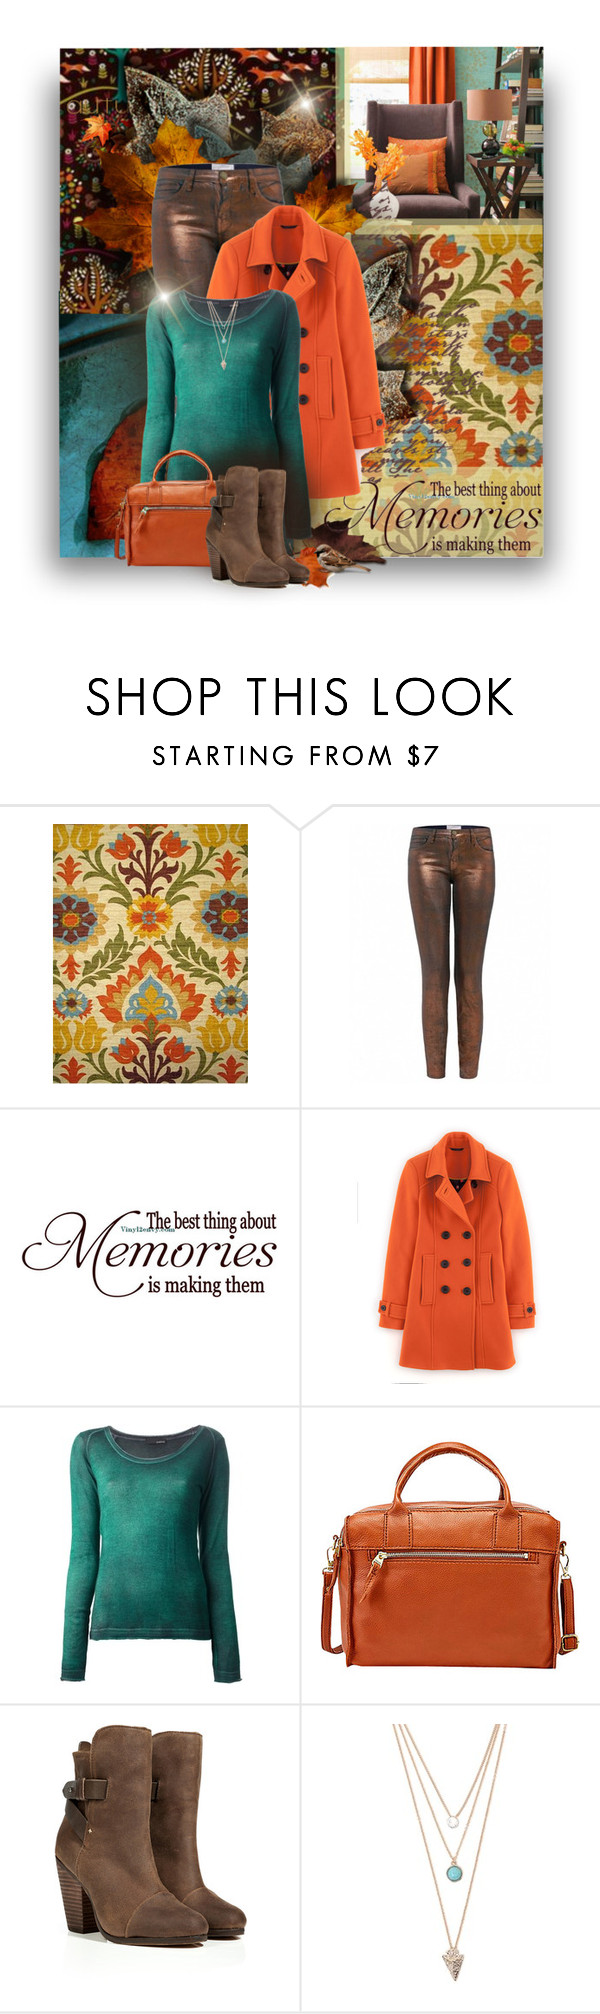 """""""The Best Memories"""" by eilselrenrag ❤ liked on Polyvore featuring Waverly, Current/Elliott, Boden, Avant Toi, FOSSIL, rag & bone and With Love From CA"""